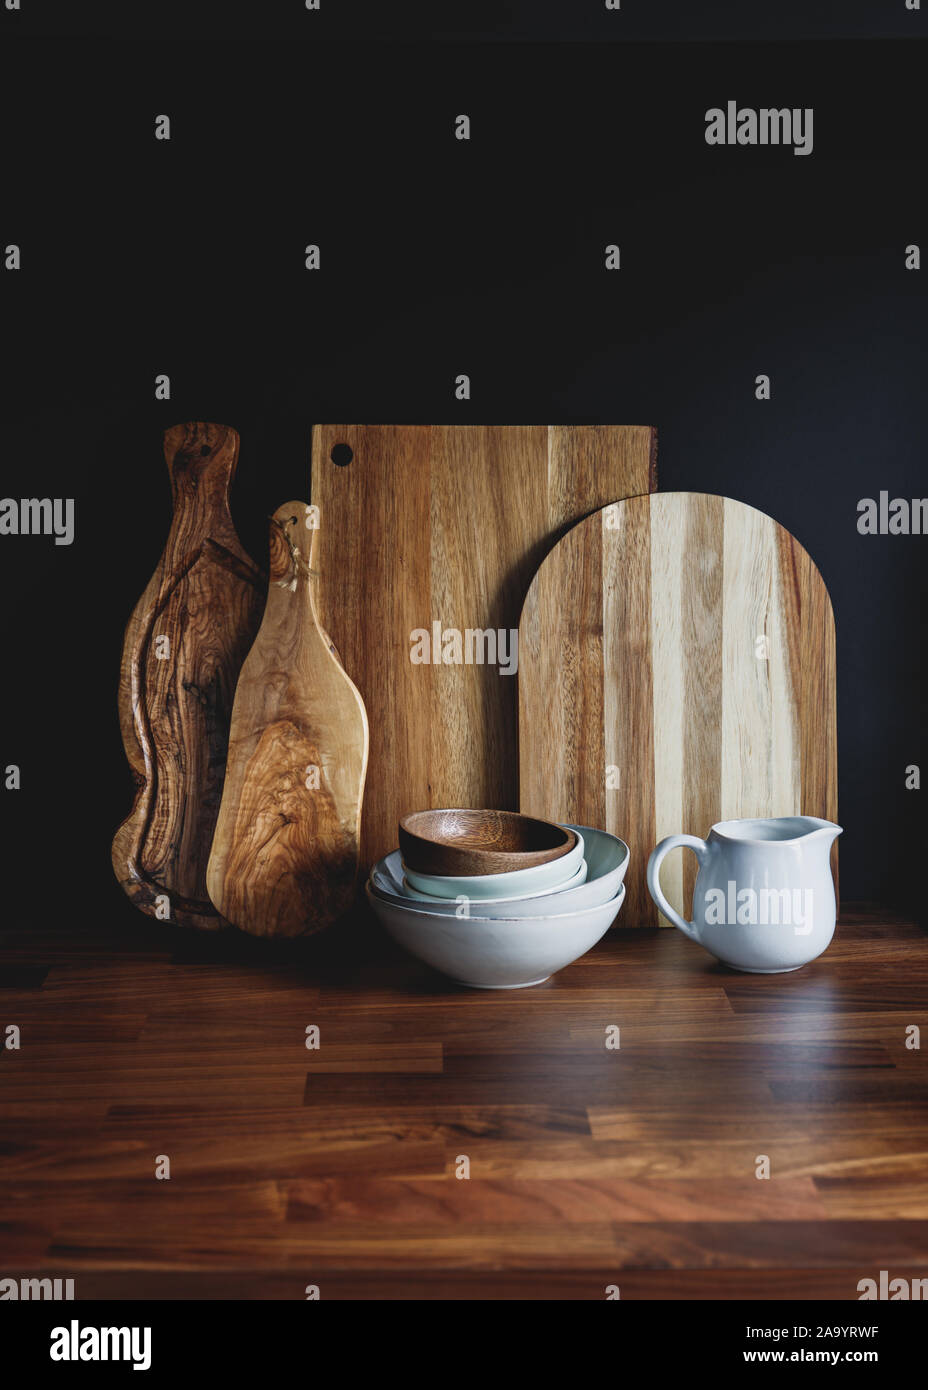 Set Of Wooden Cutting Board And Ceramic Dishes On A Wooden Kitchen Table Over Black Background The Concept Of Modern Style Rustic Kitchen Interior Stock Photo Alamy